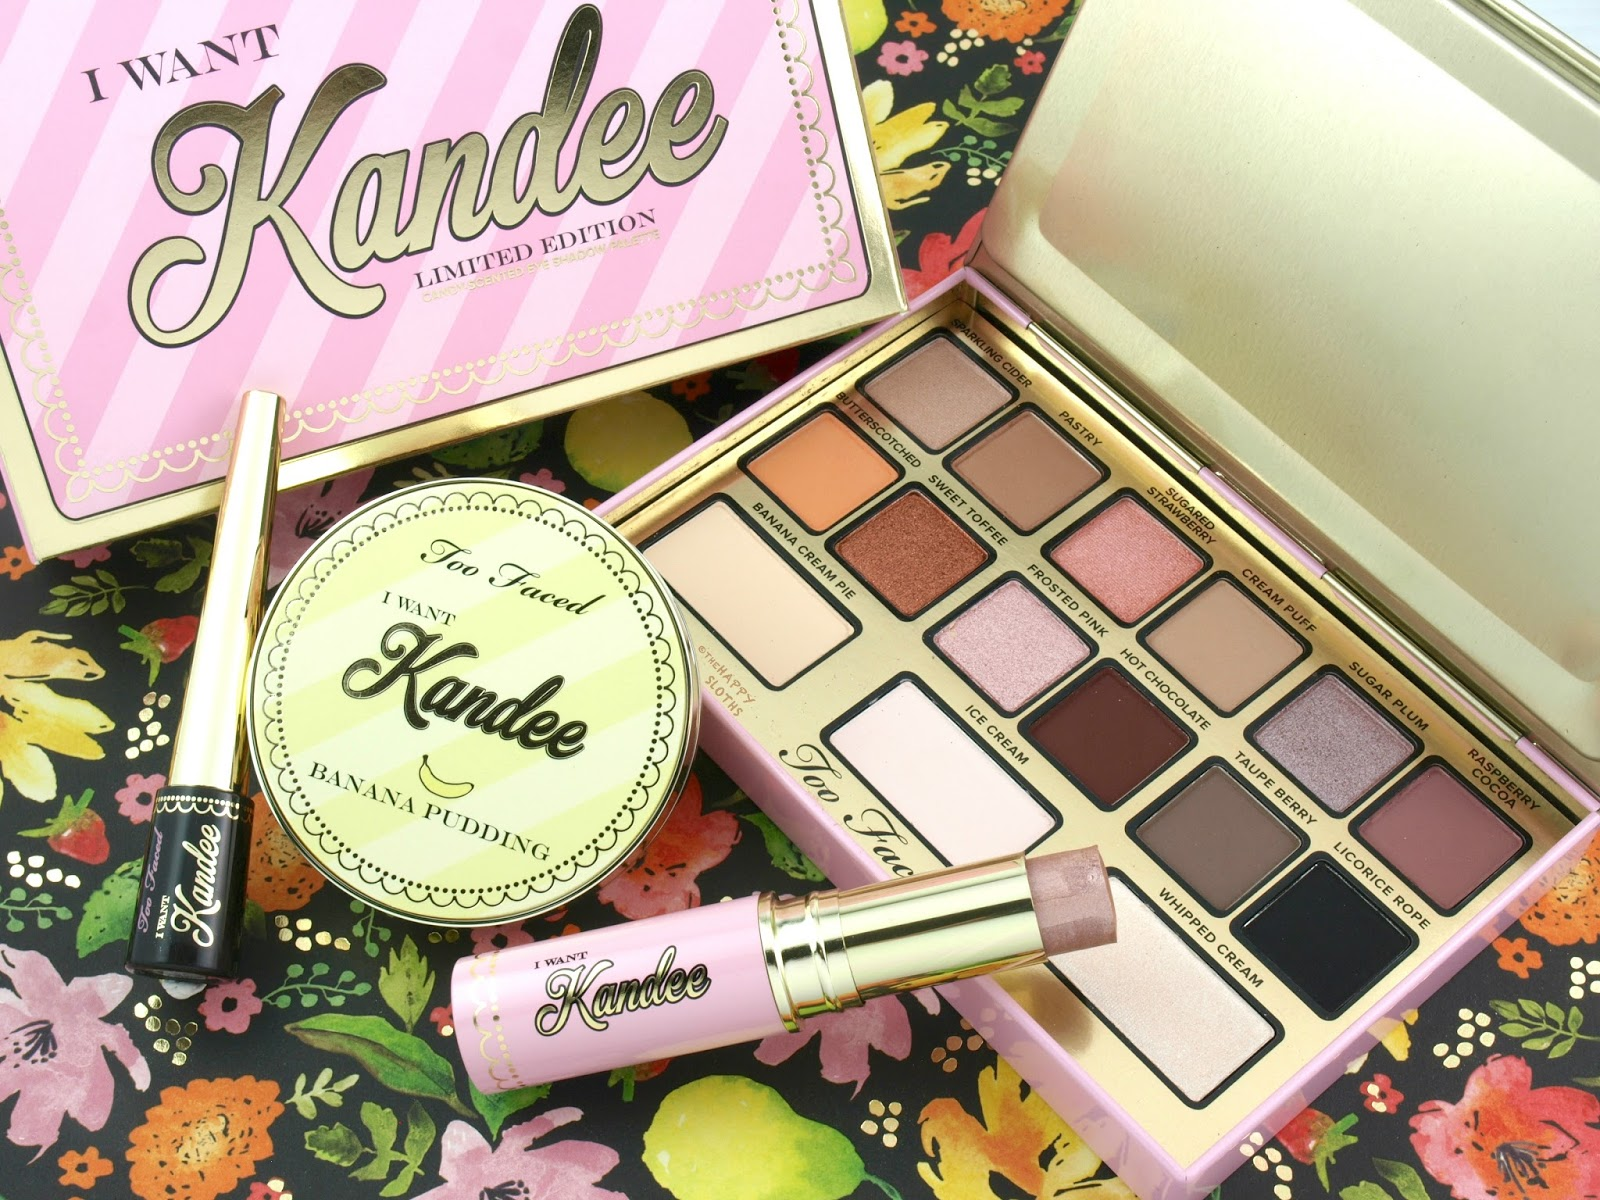 Too Faced x Kandee Johnson | I Want Kandee Collection: Review and Swatches